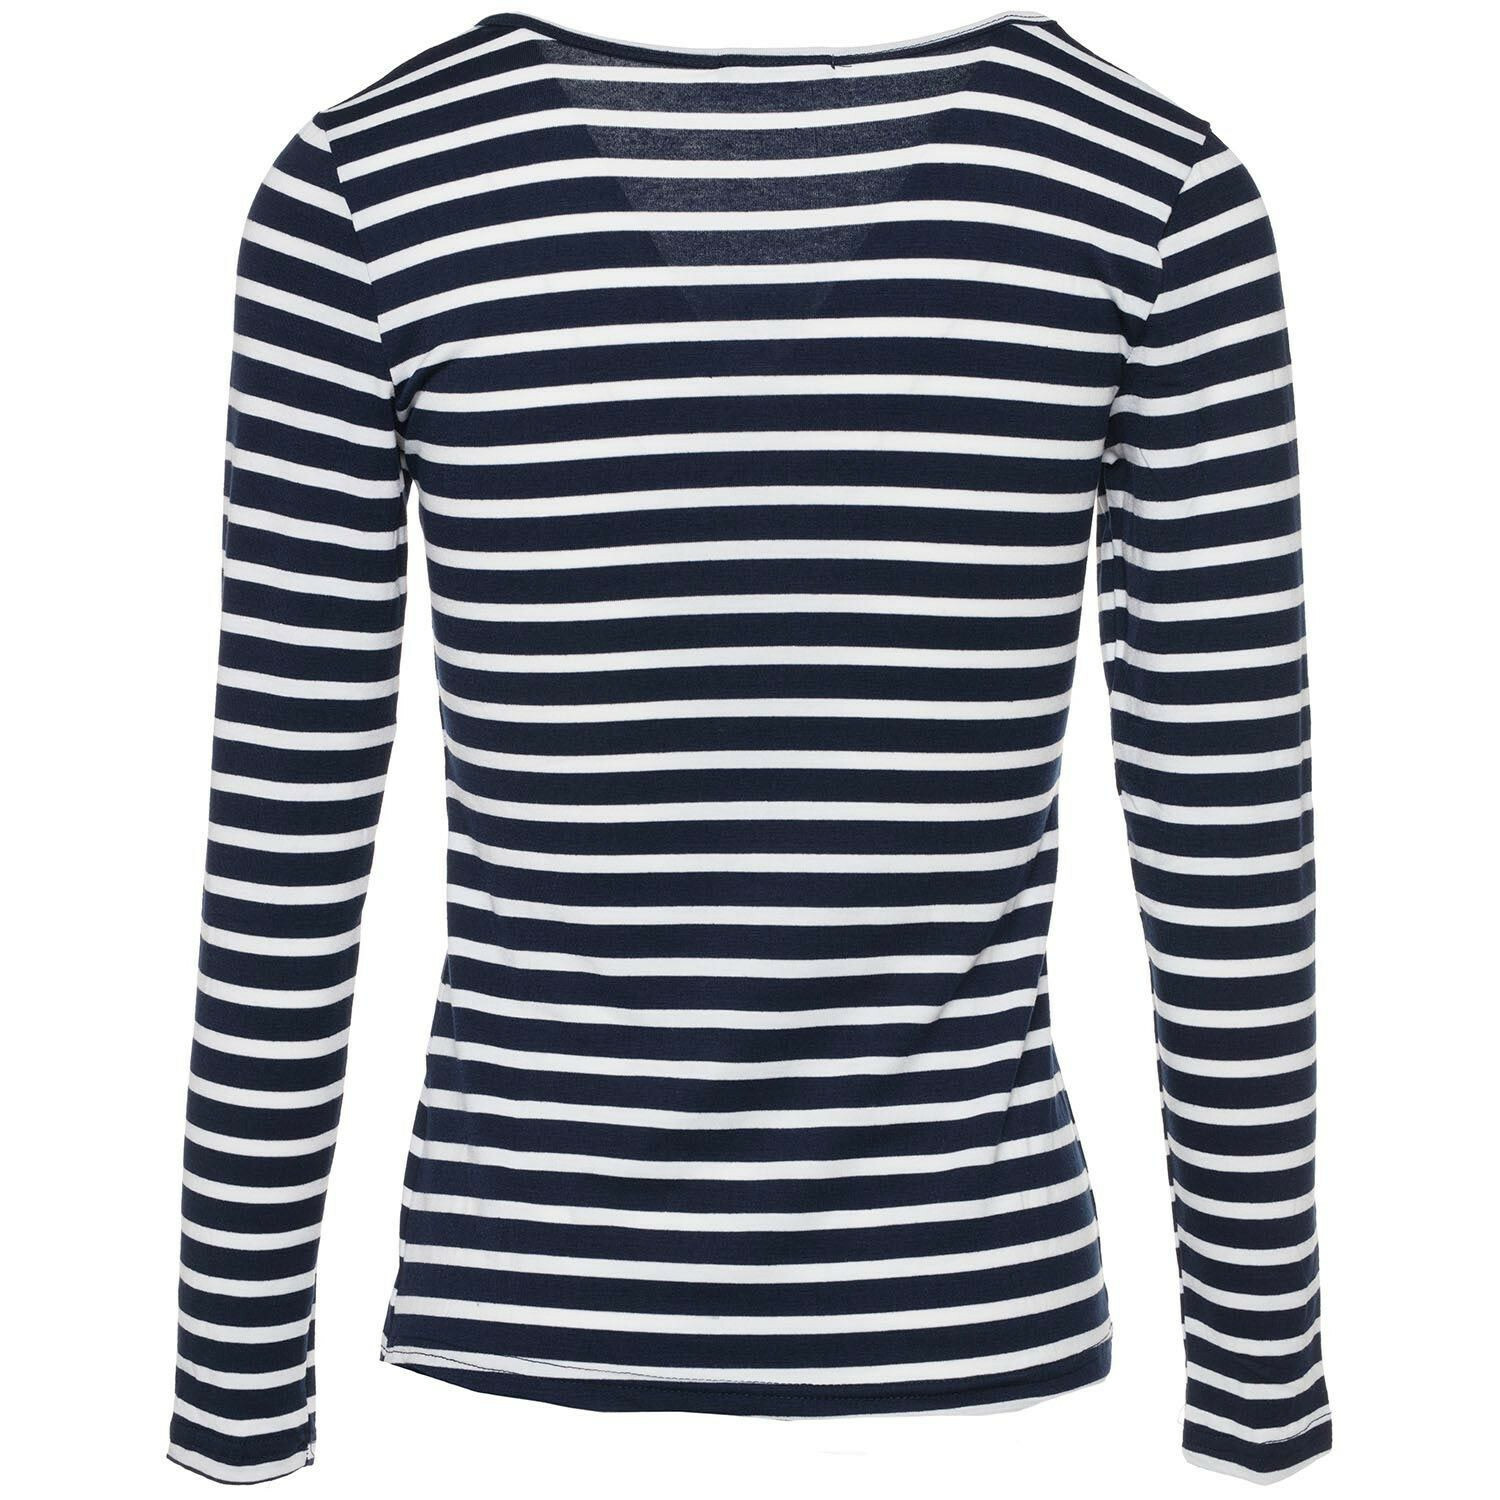 NAVY AND WHITE LONGSLEEVE